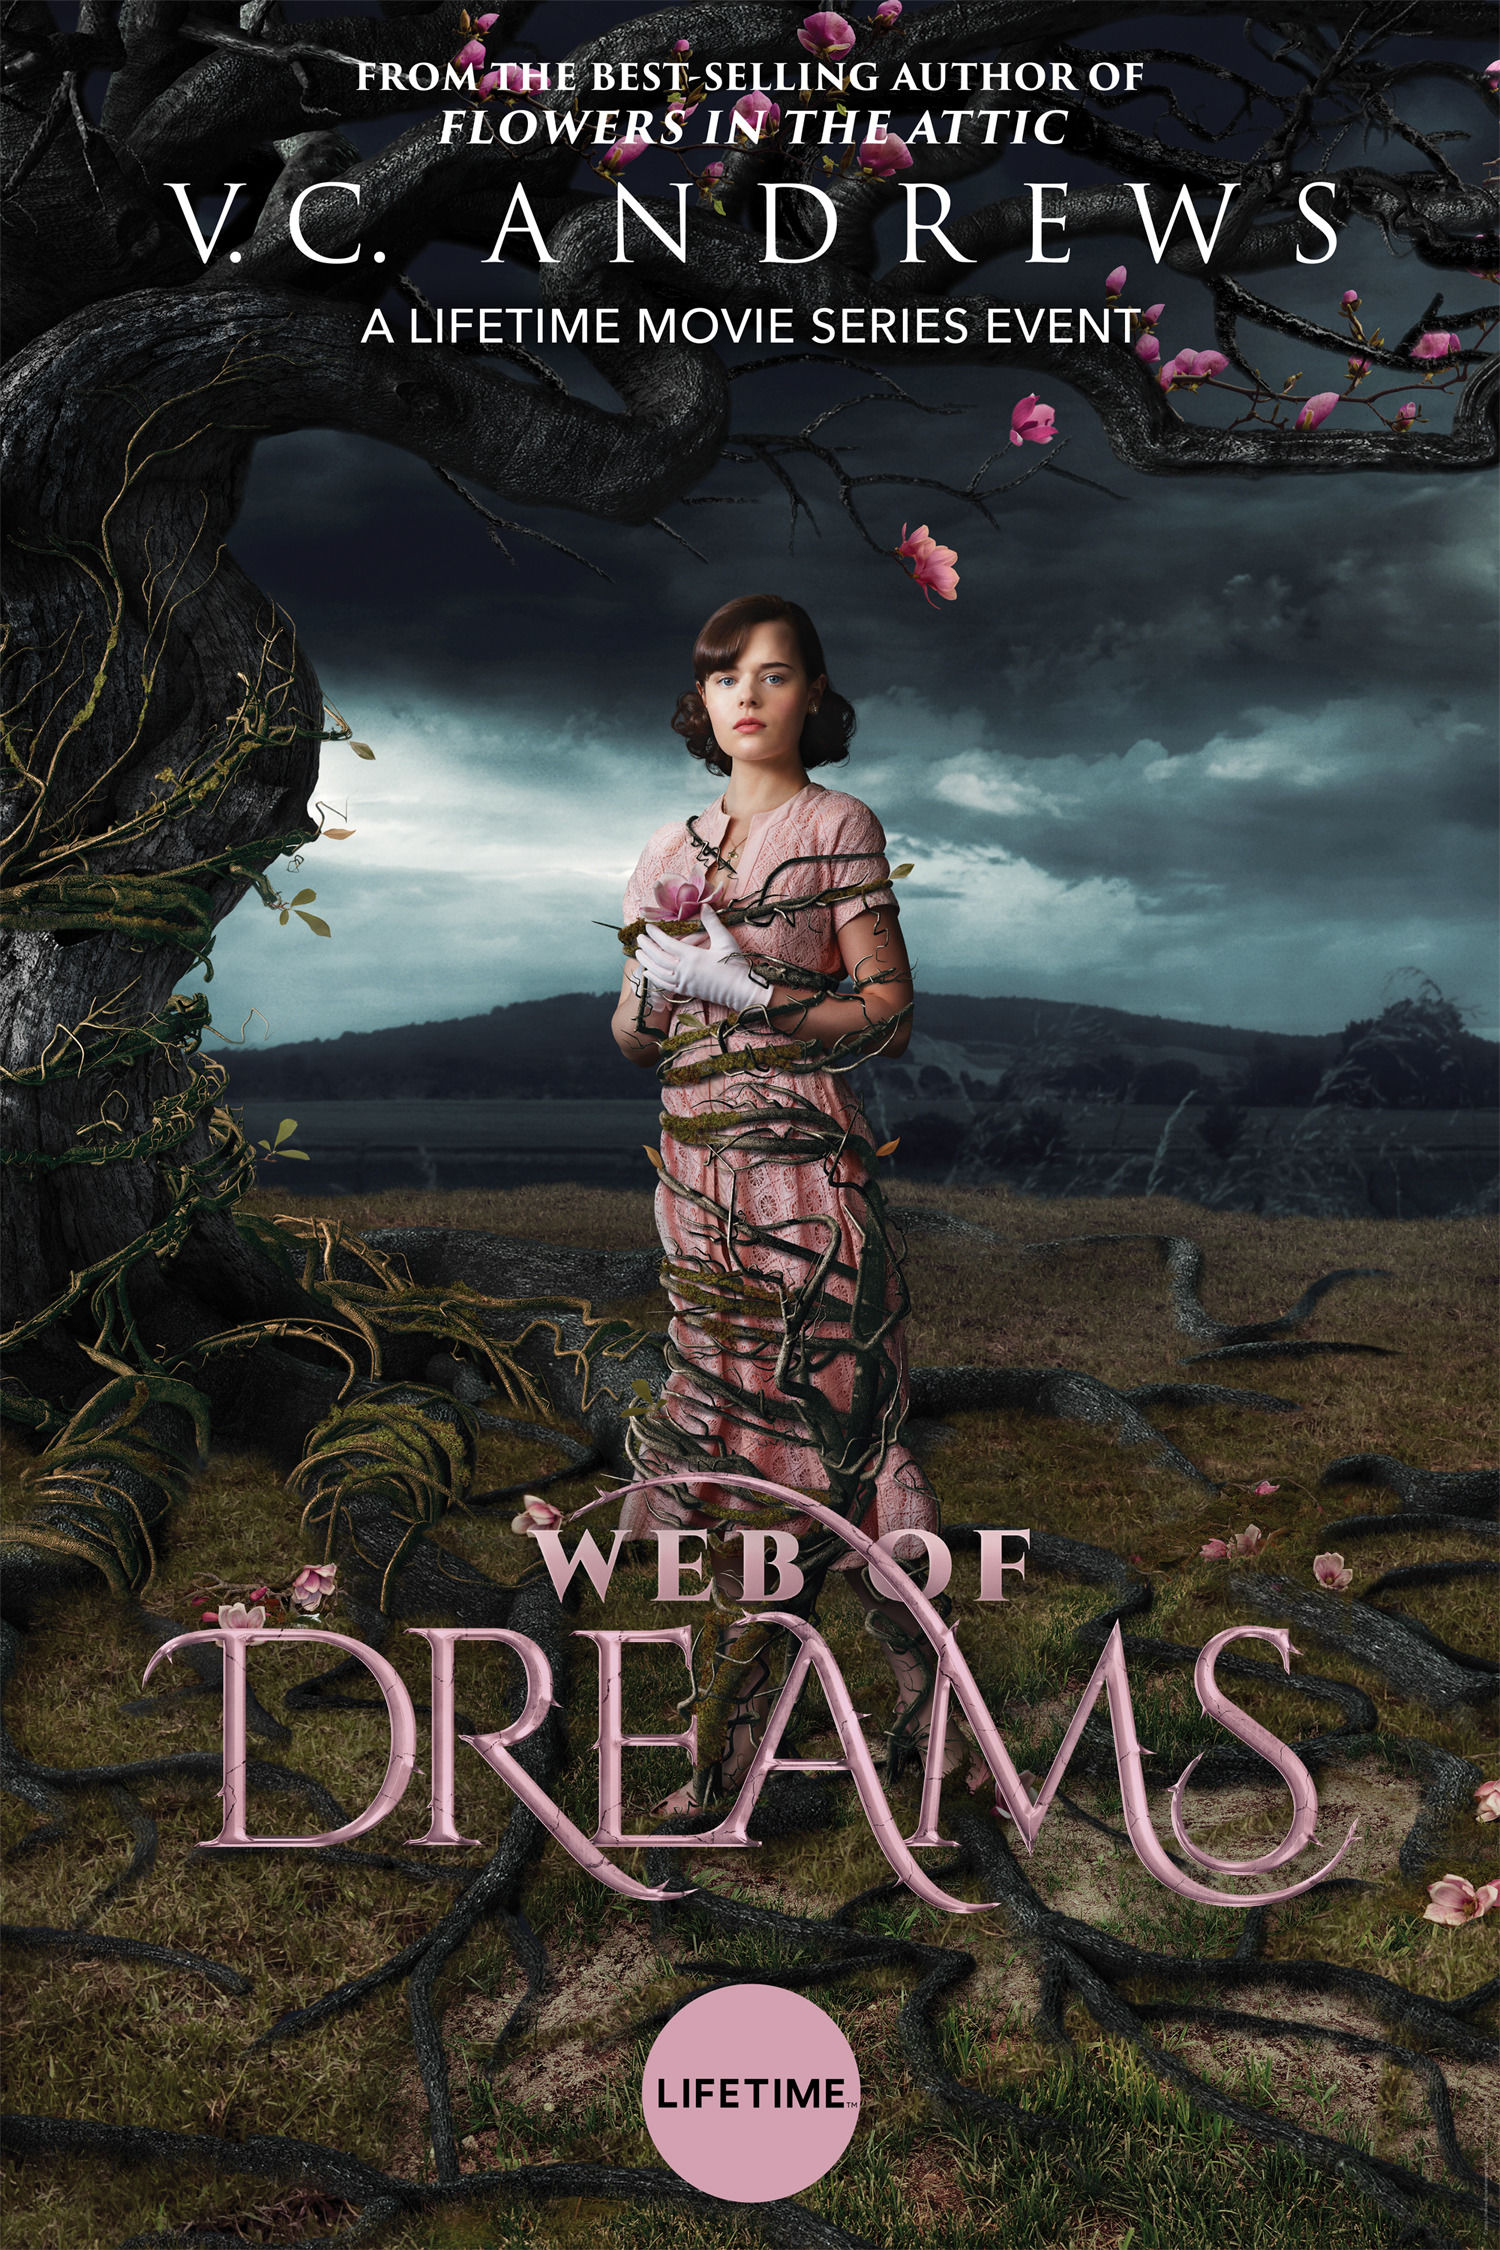 Web of Dreams (TV Movie 2019) - IMDb